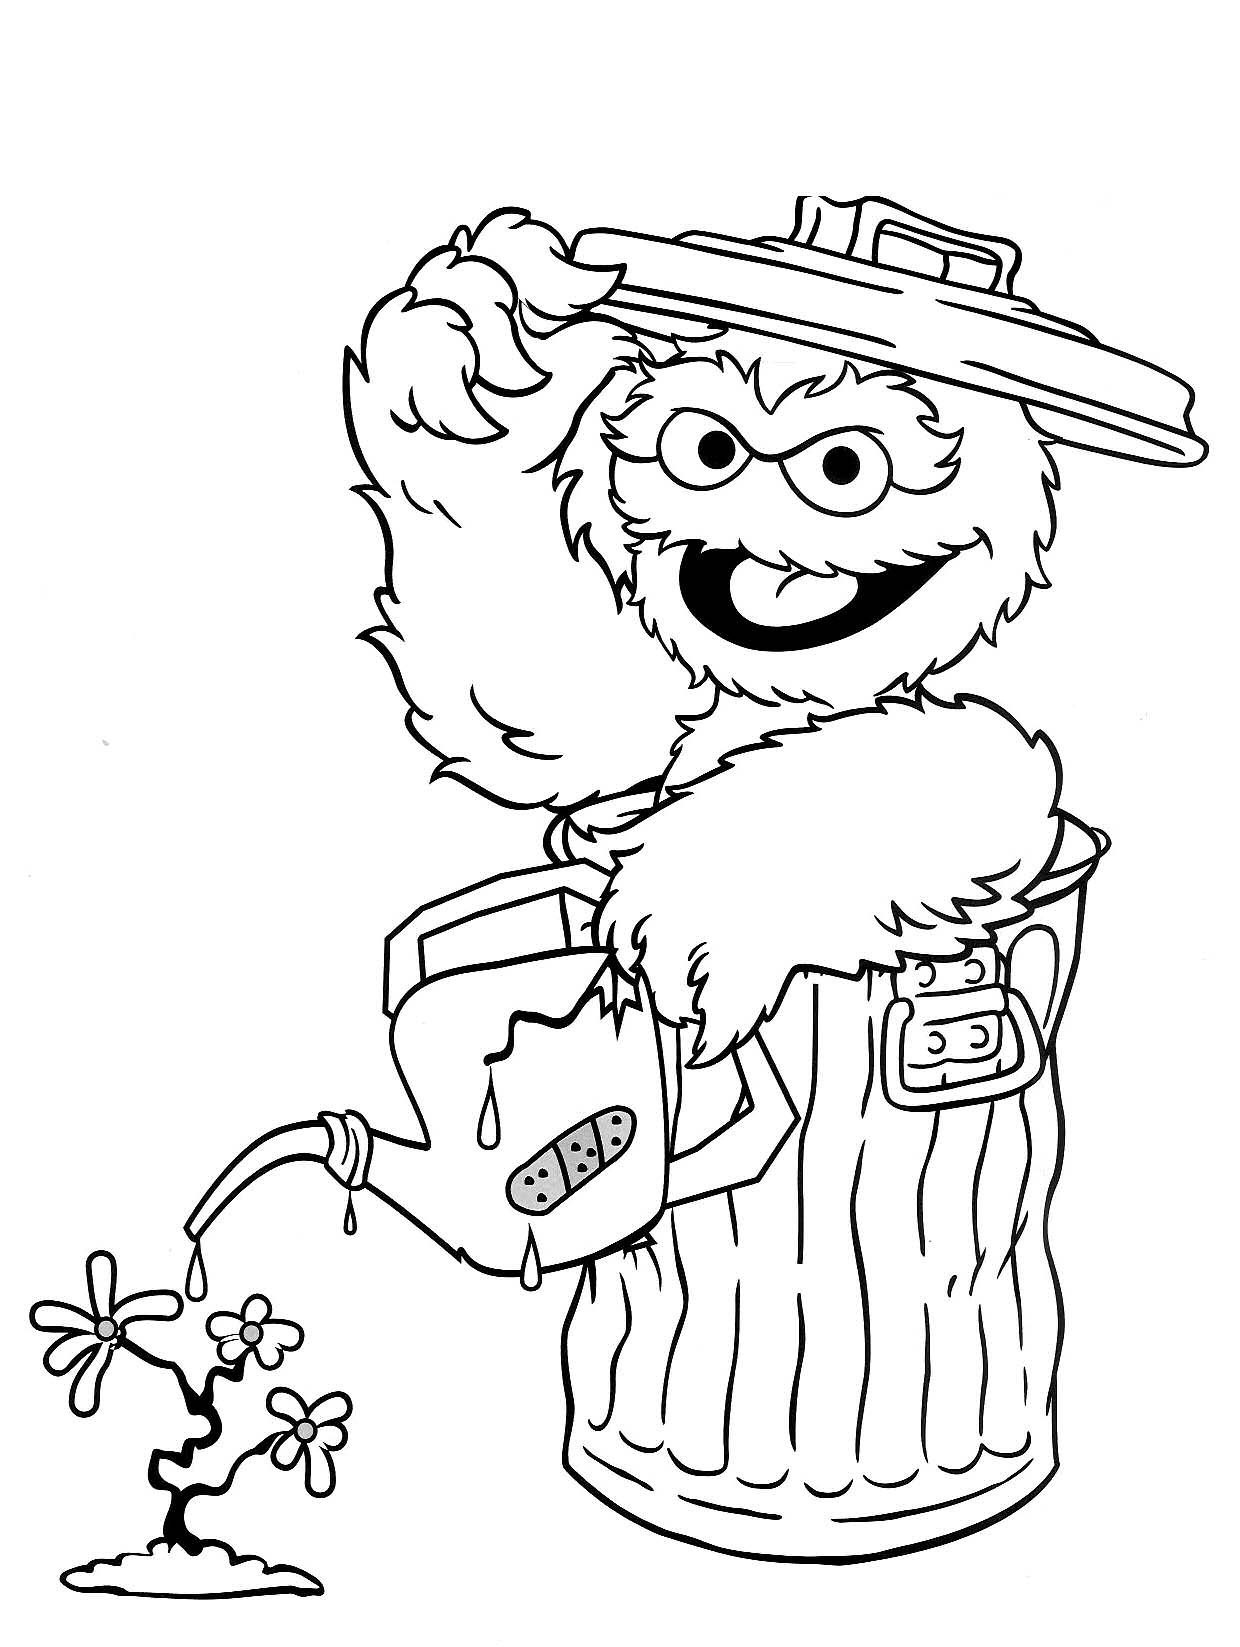 Sesame Street Elmo Coloring Pages